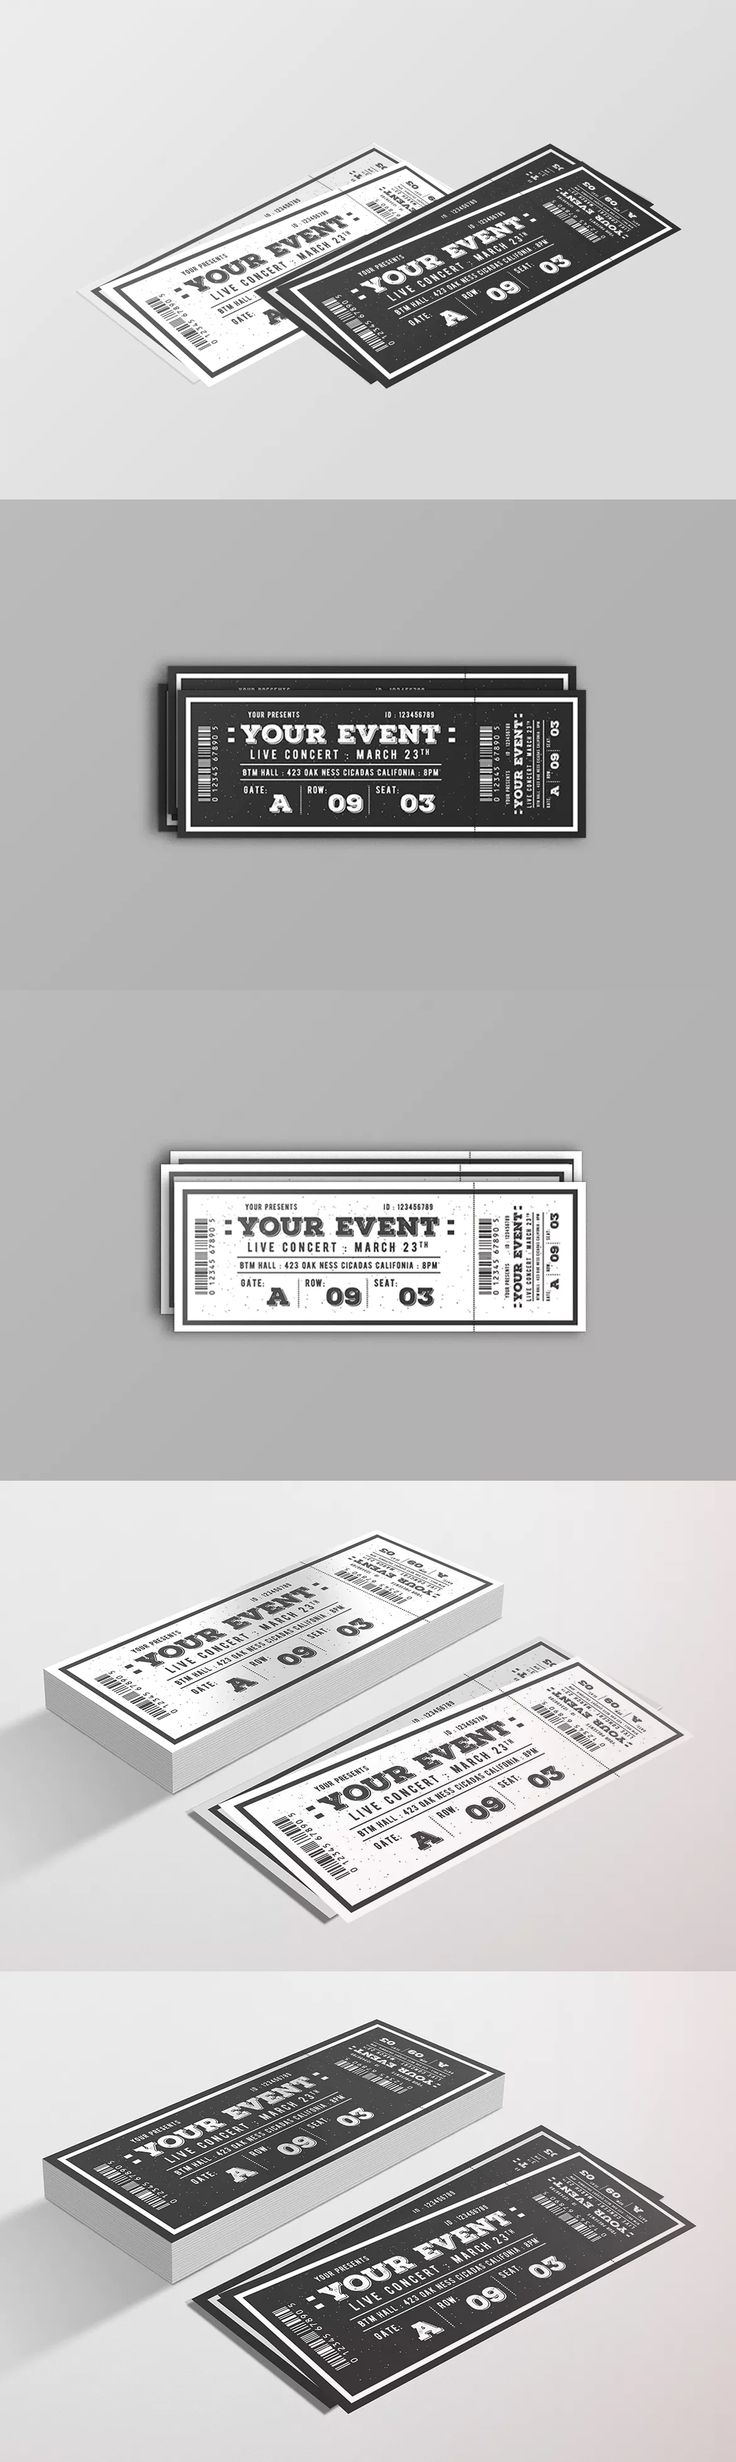 The Best Ticket Templates Images On Pinterest Role Models - Event ticket template photoshop